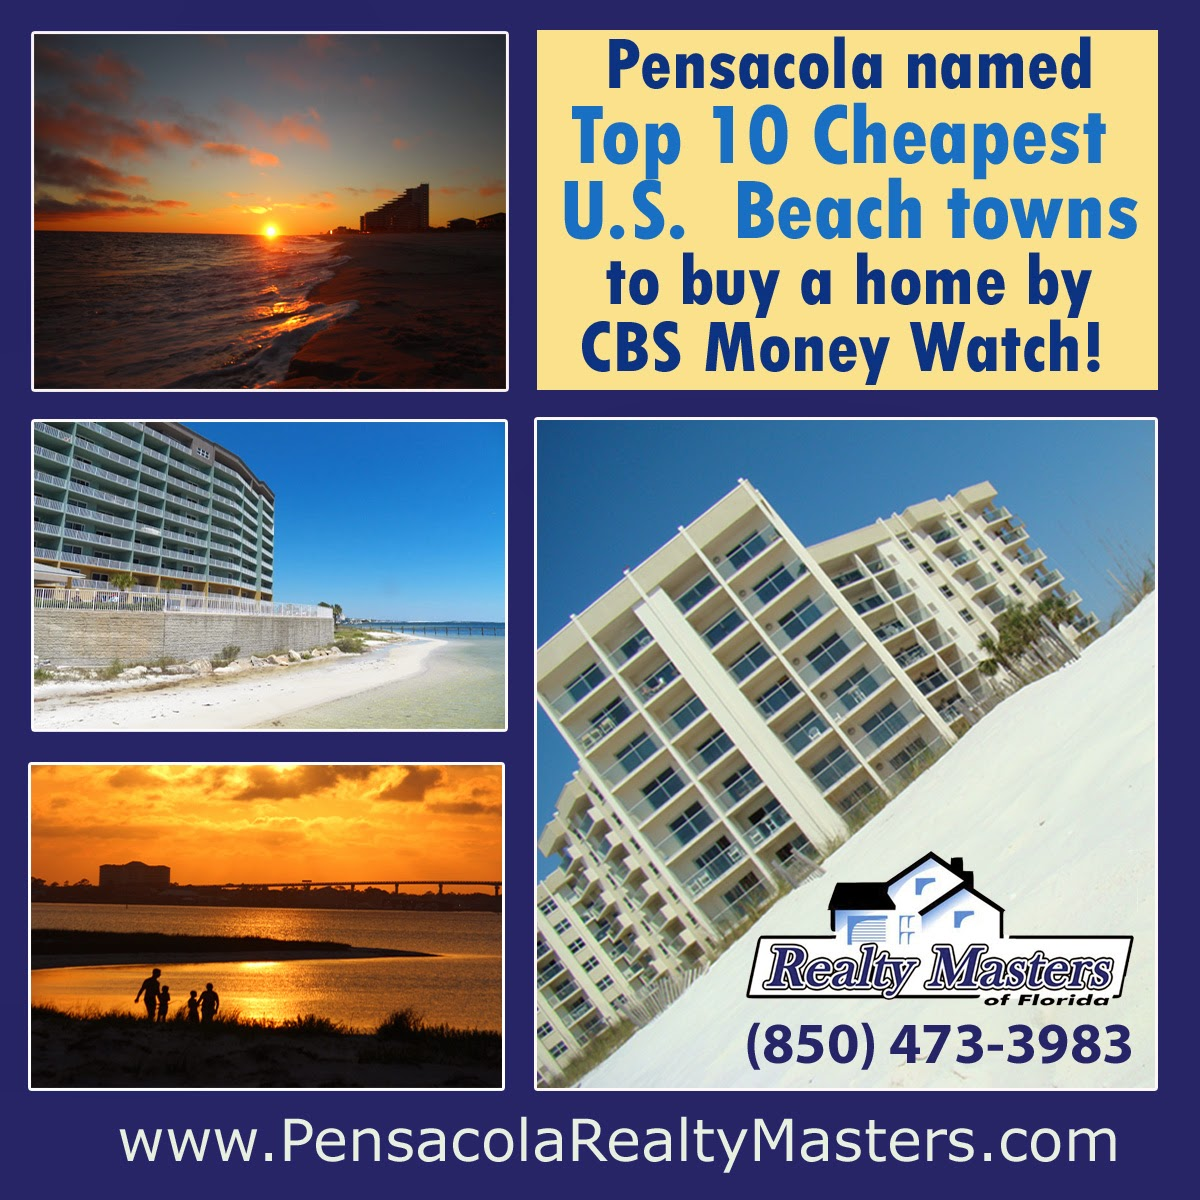 Pensacola affordable waterfront beach real estate